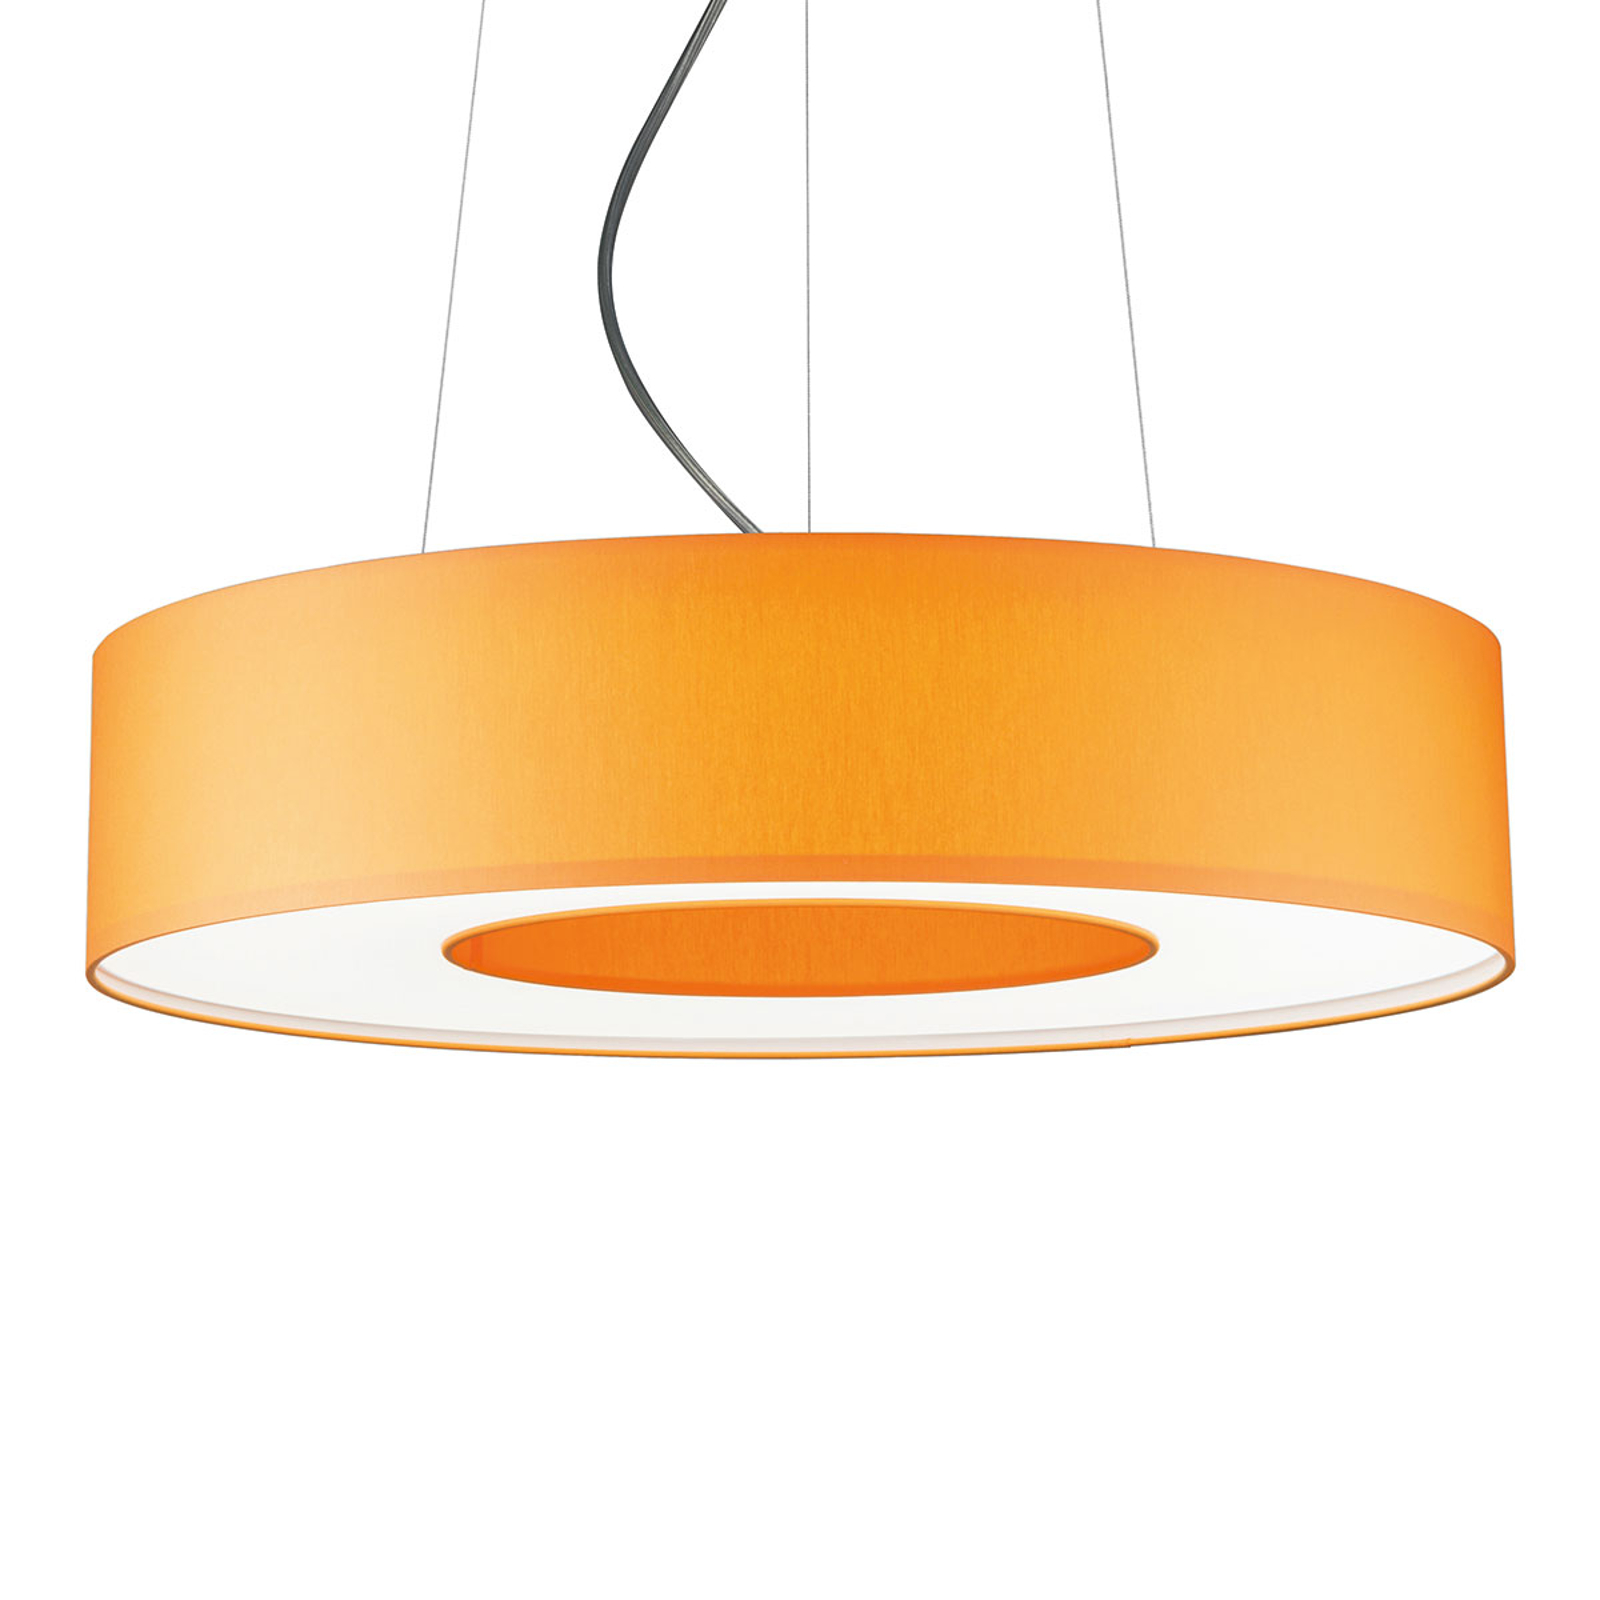 Suspension LED Donut dimmable 22 W orange